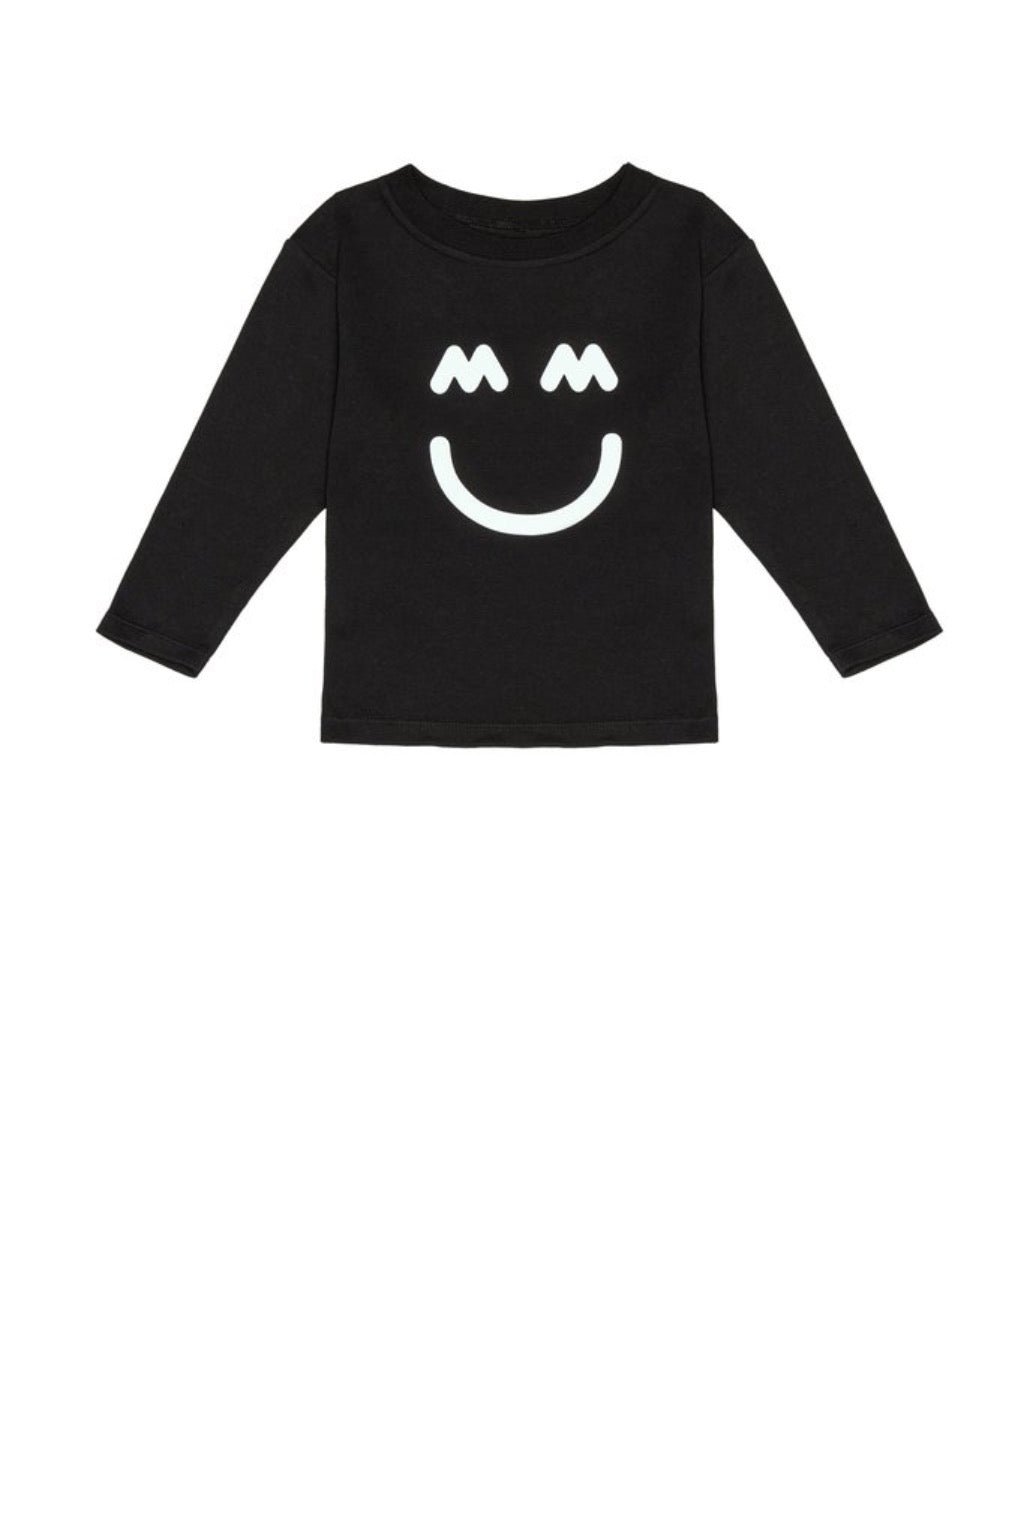 Miles and Milan The Happy Tee in Black